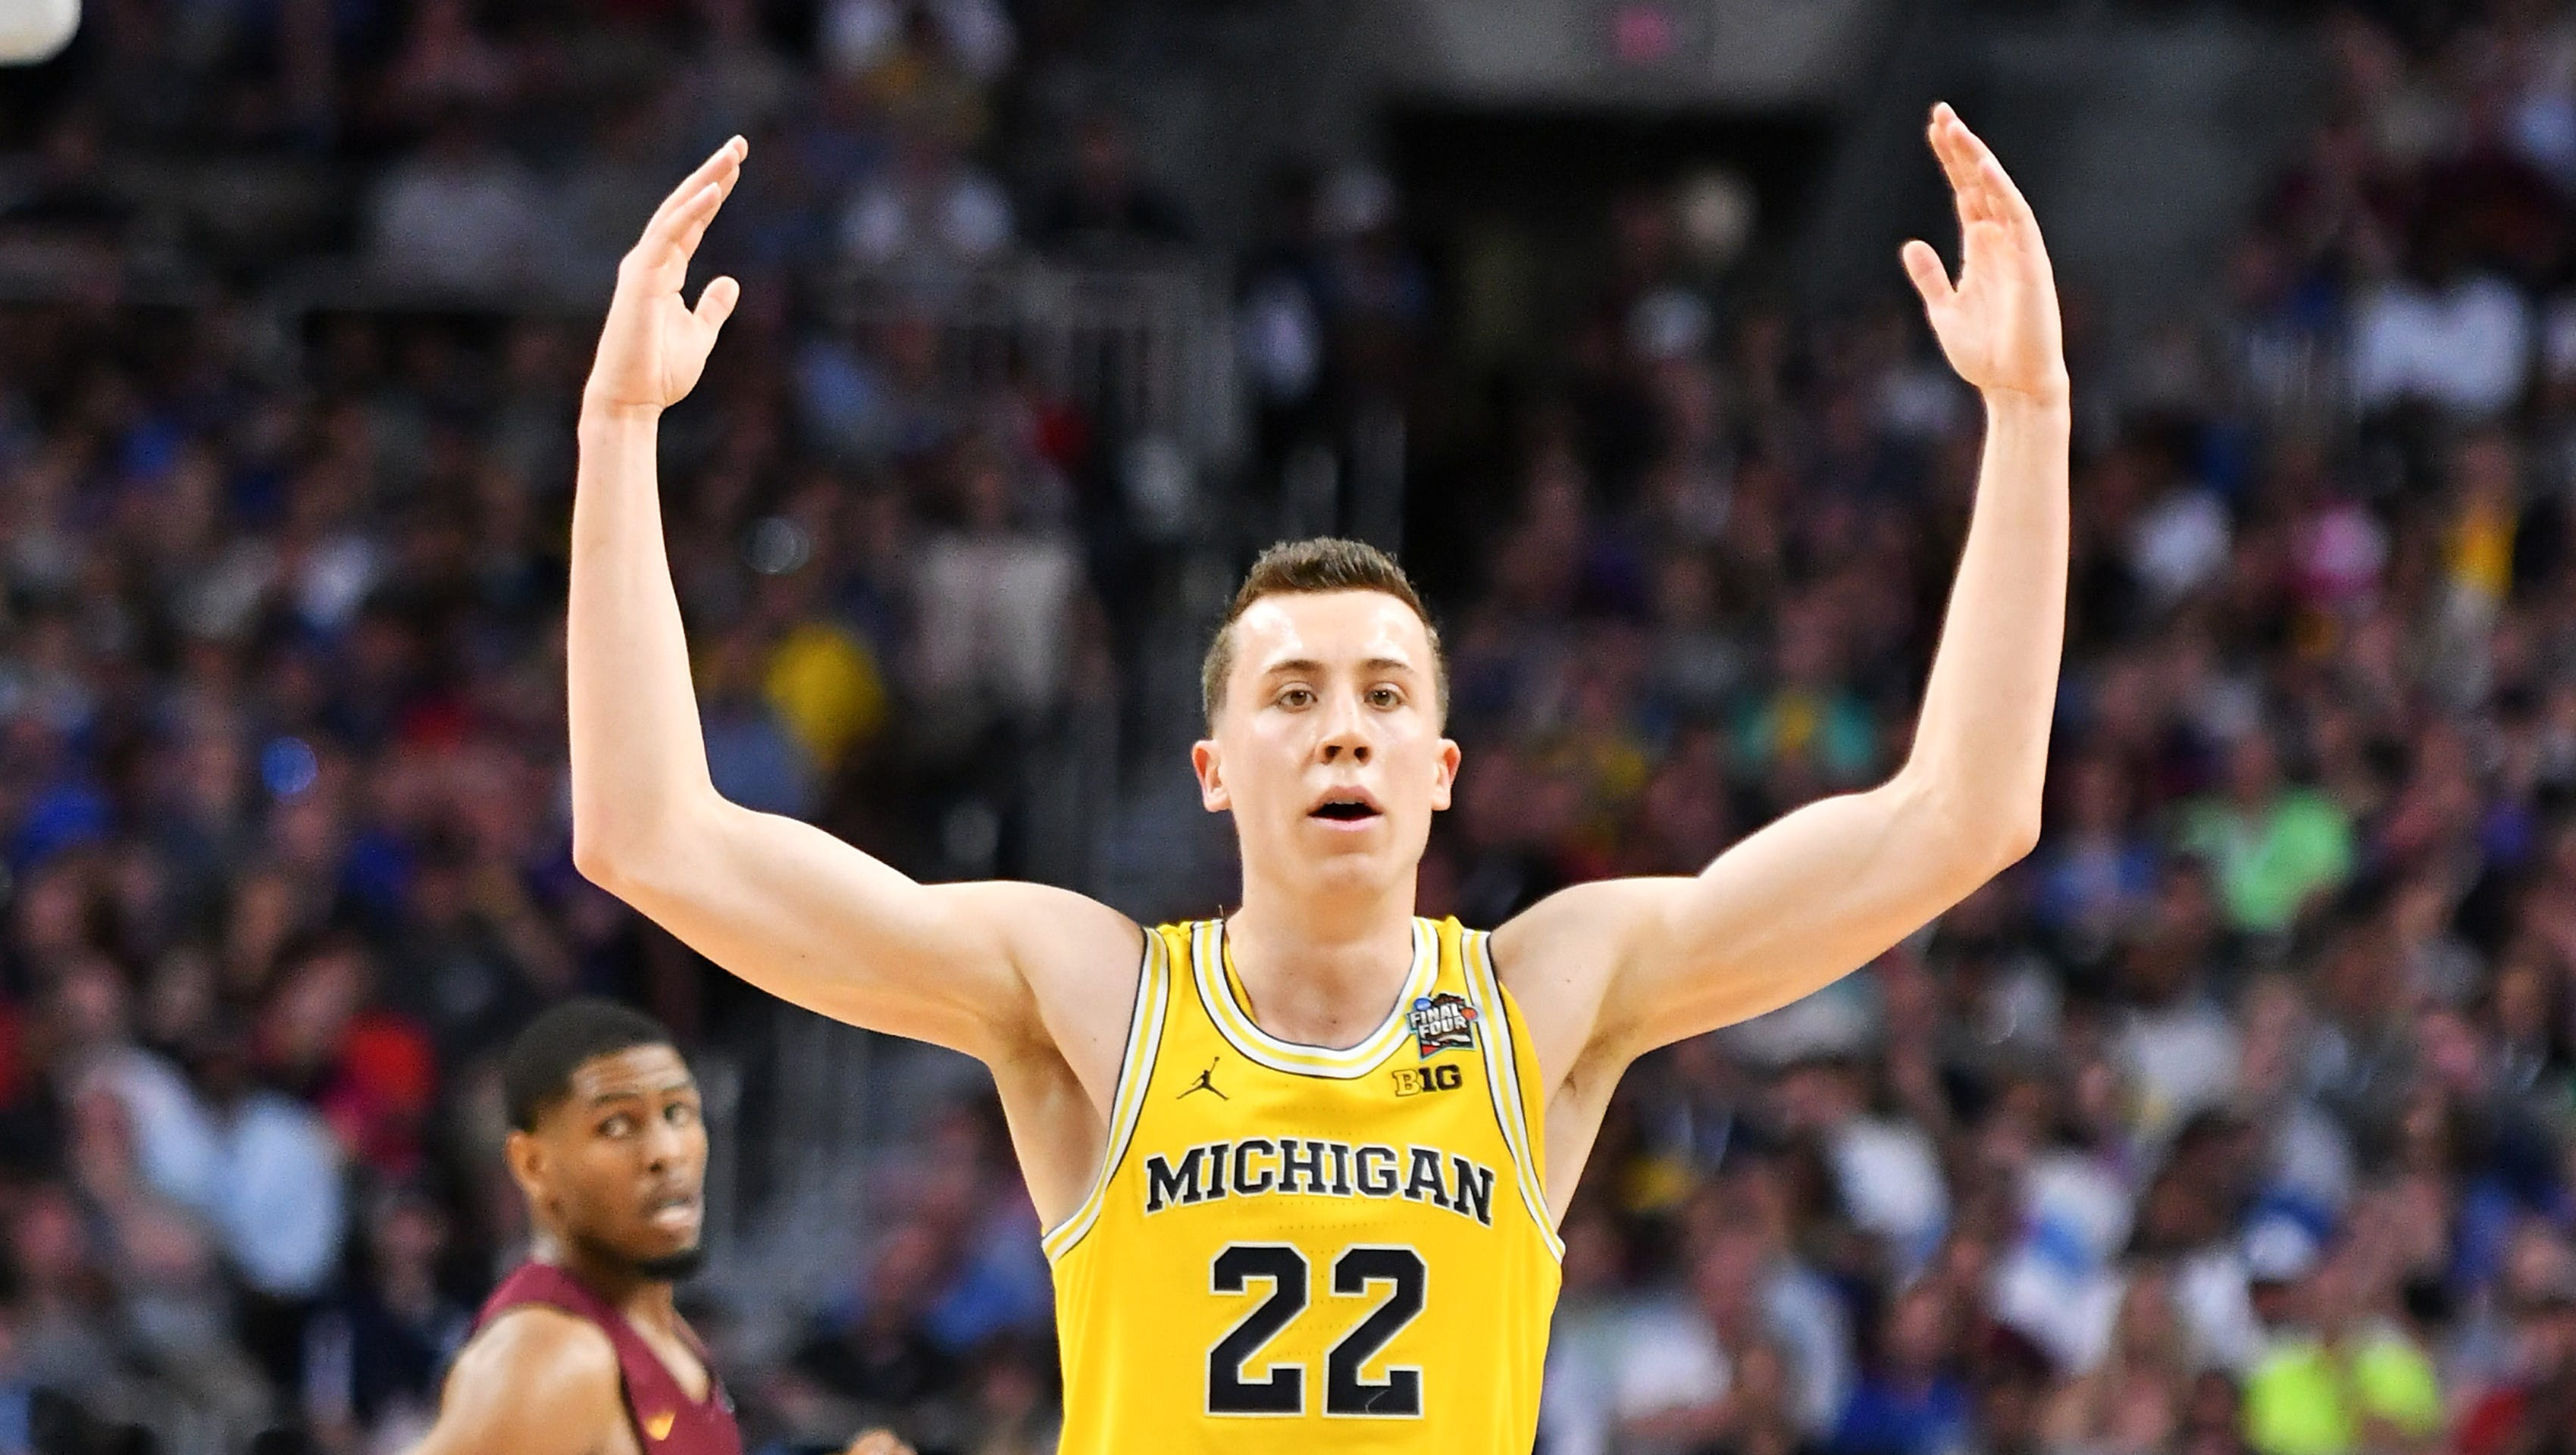 Michigan S Duncan Robinson Has Had Incredible Run To Title Game